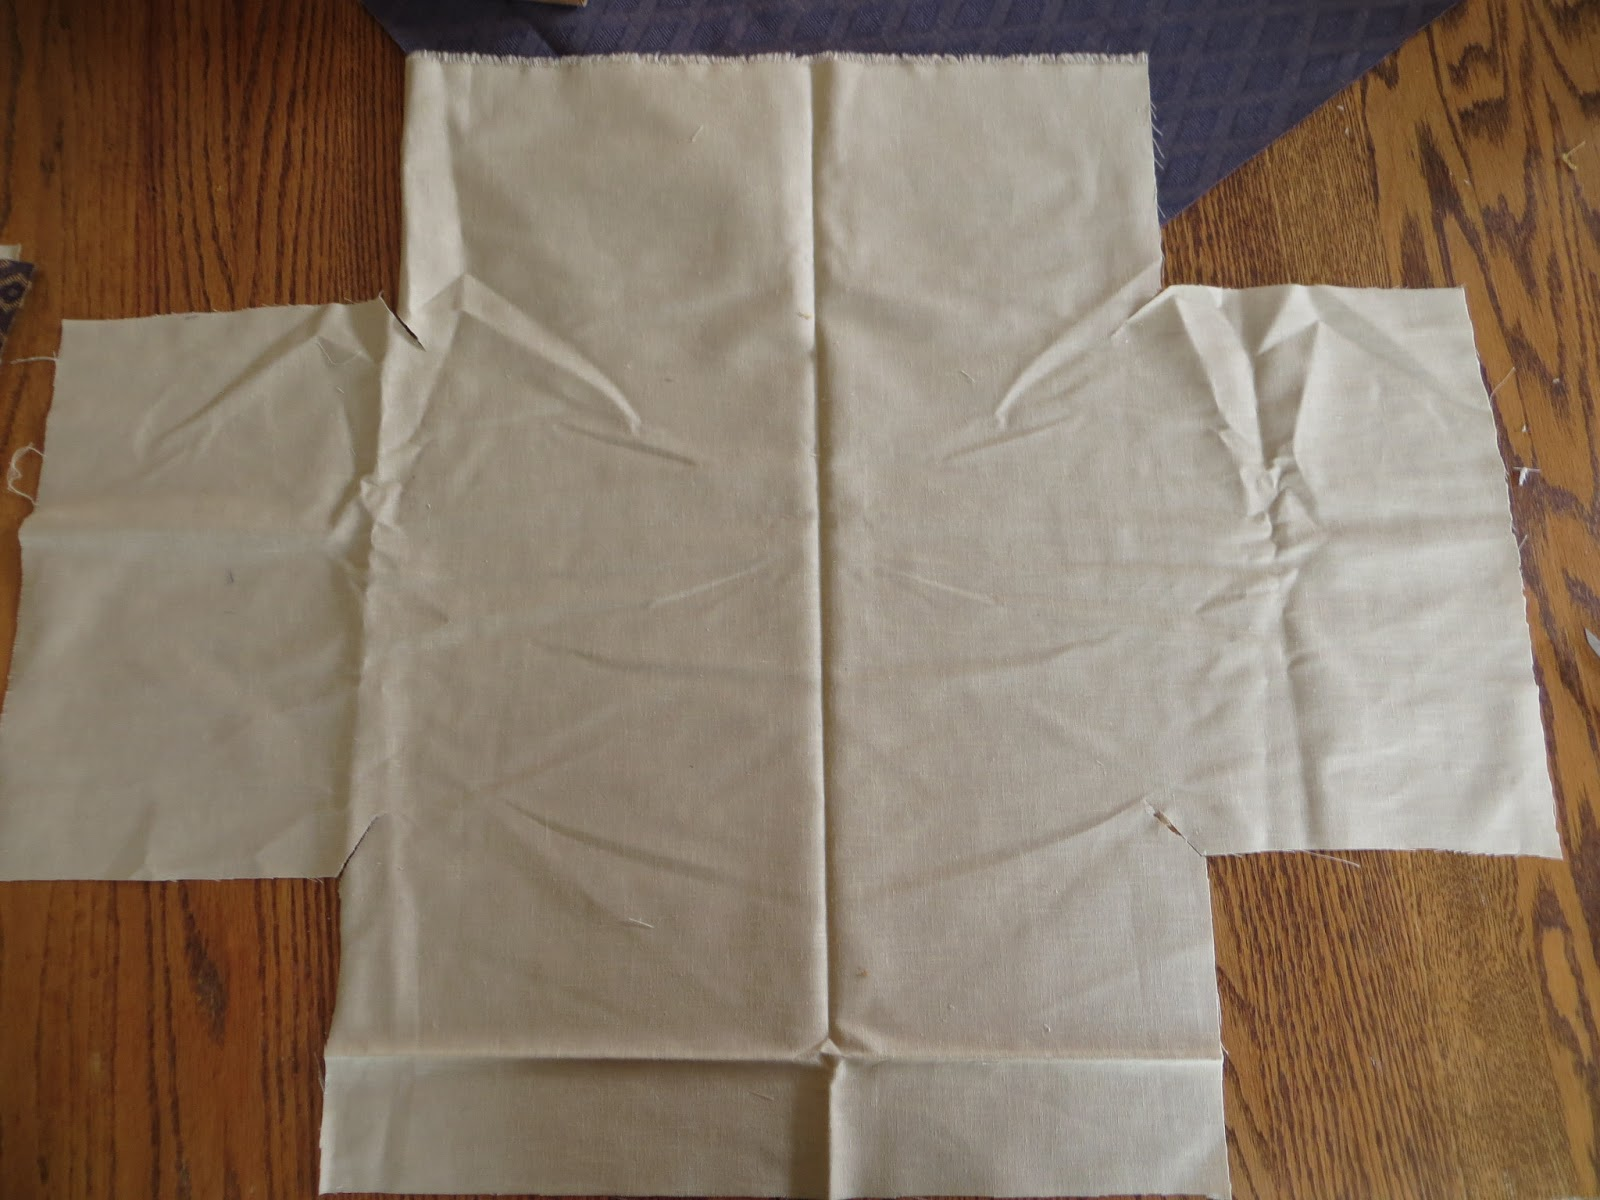 Namely Original How To Cover A Box In Fabric Ideas Hide Fuse